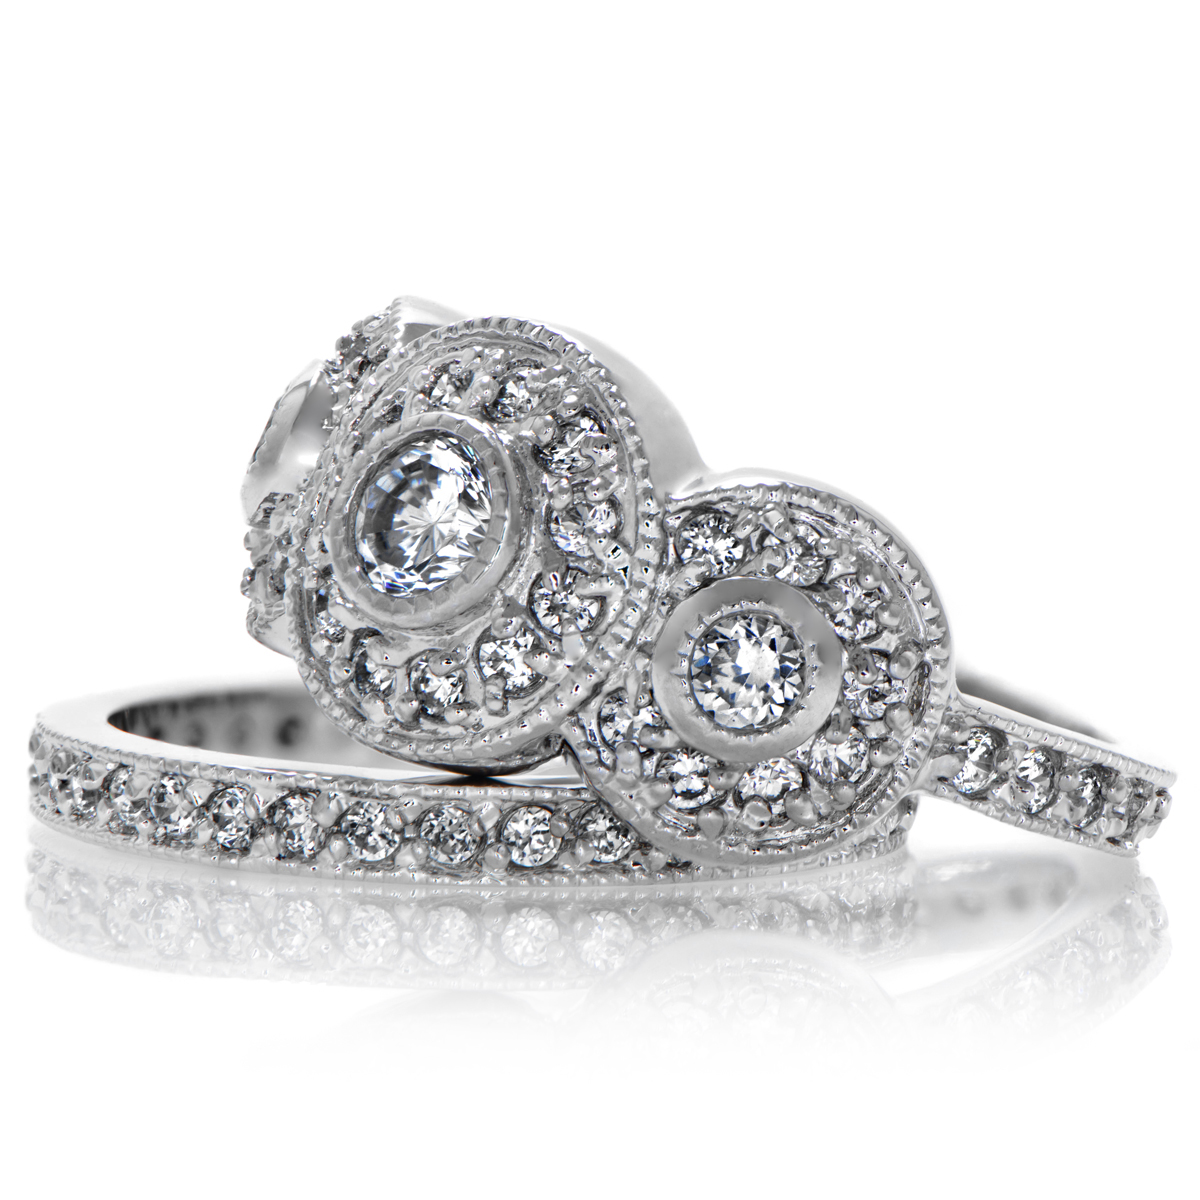 Classic wedding ring sets inspirational navokalcom for Vintage wedding rings sets